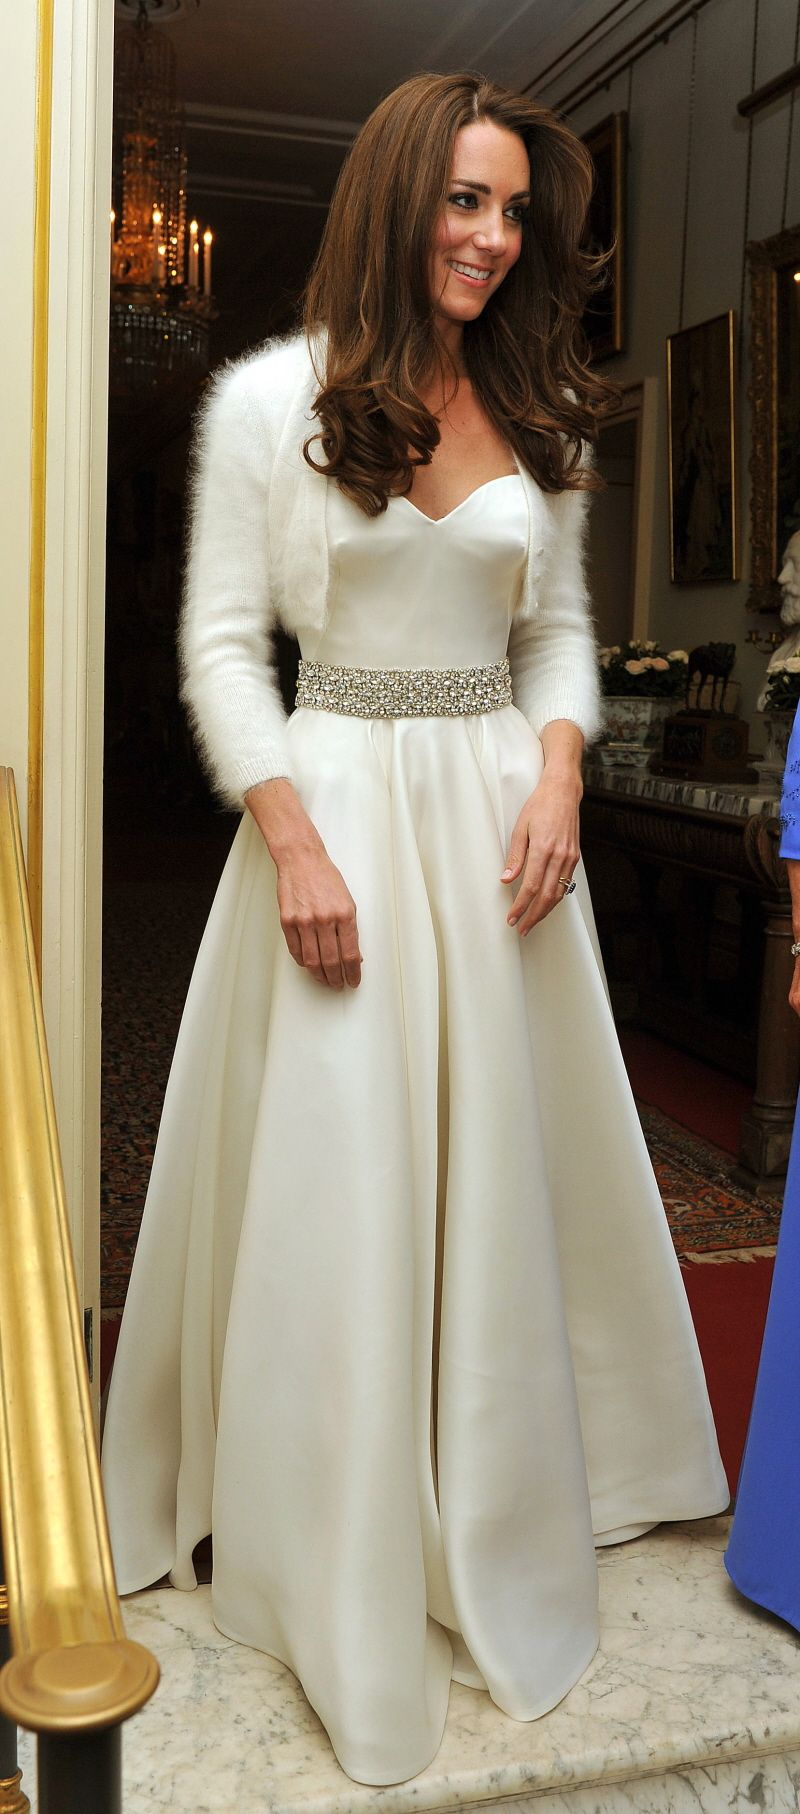 Kate Middleton In Her Wedding Reception Dress By Sarah Burton From